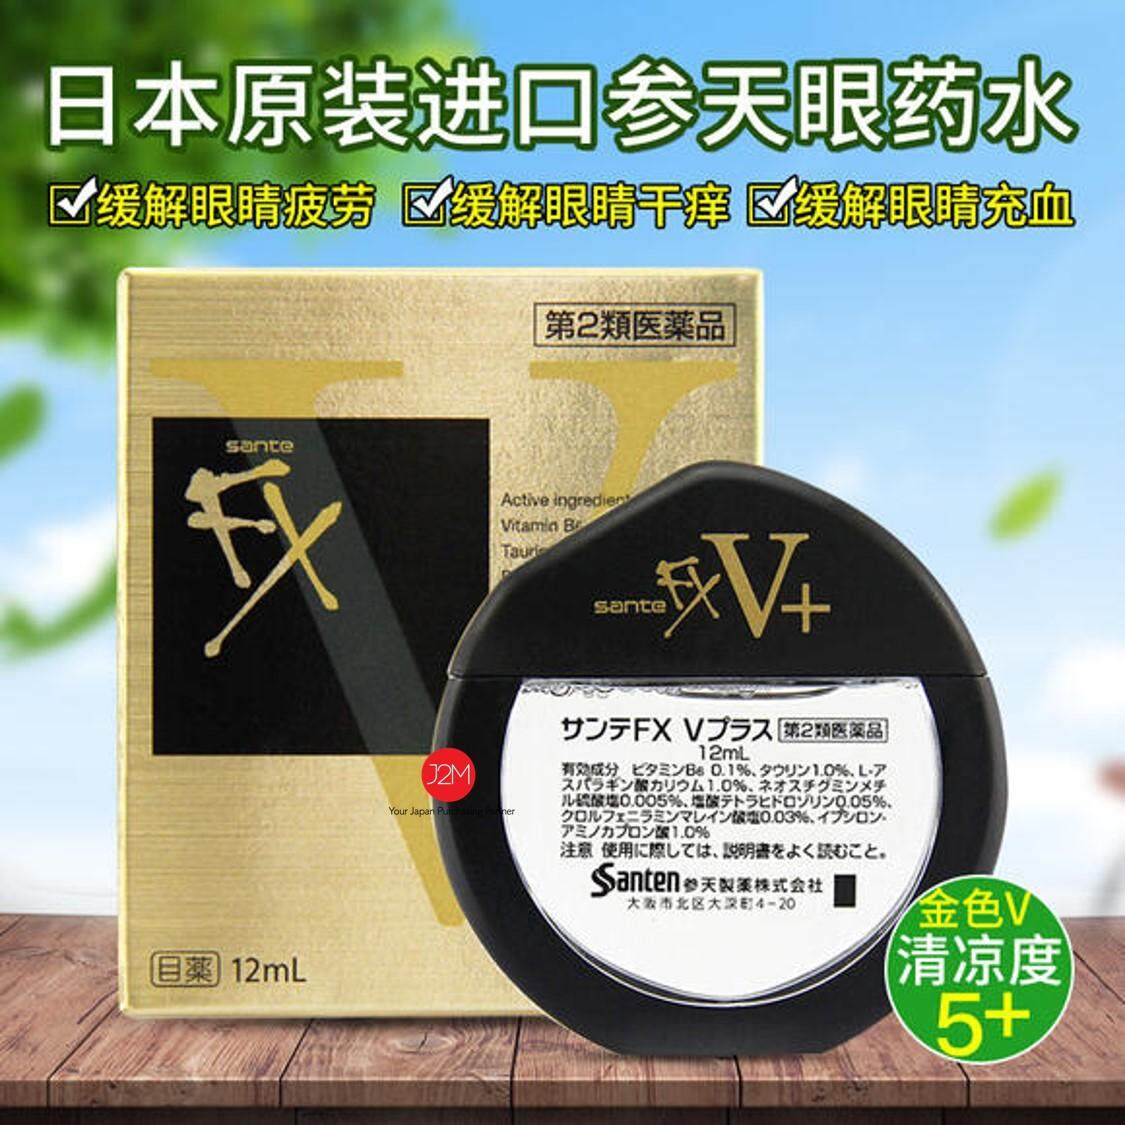 Sante Fx V+ Cooling Eye Drops 12ml-Ready Stock By J2m Global.